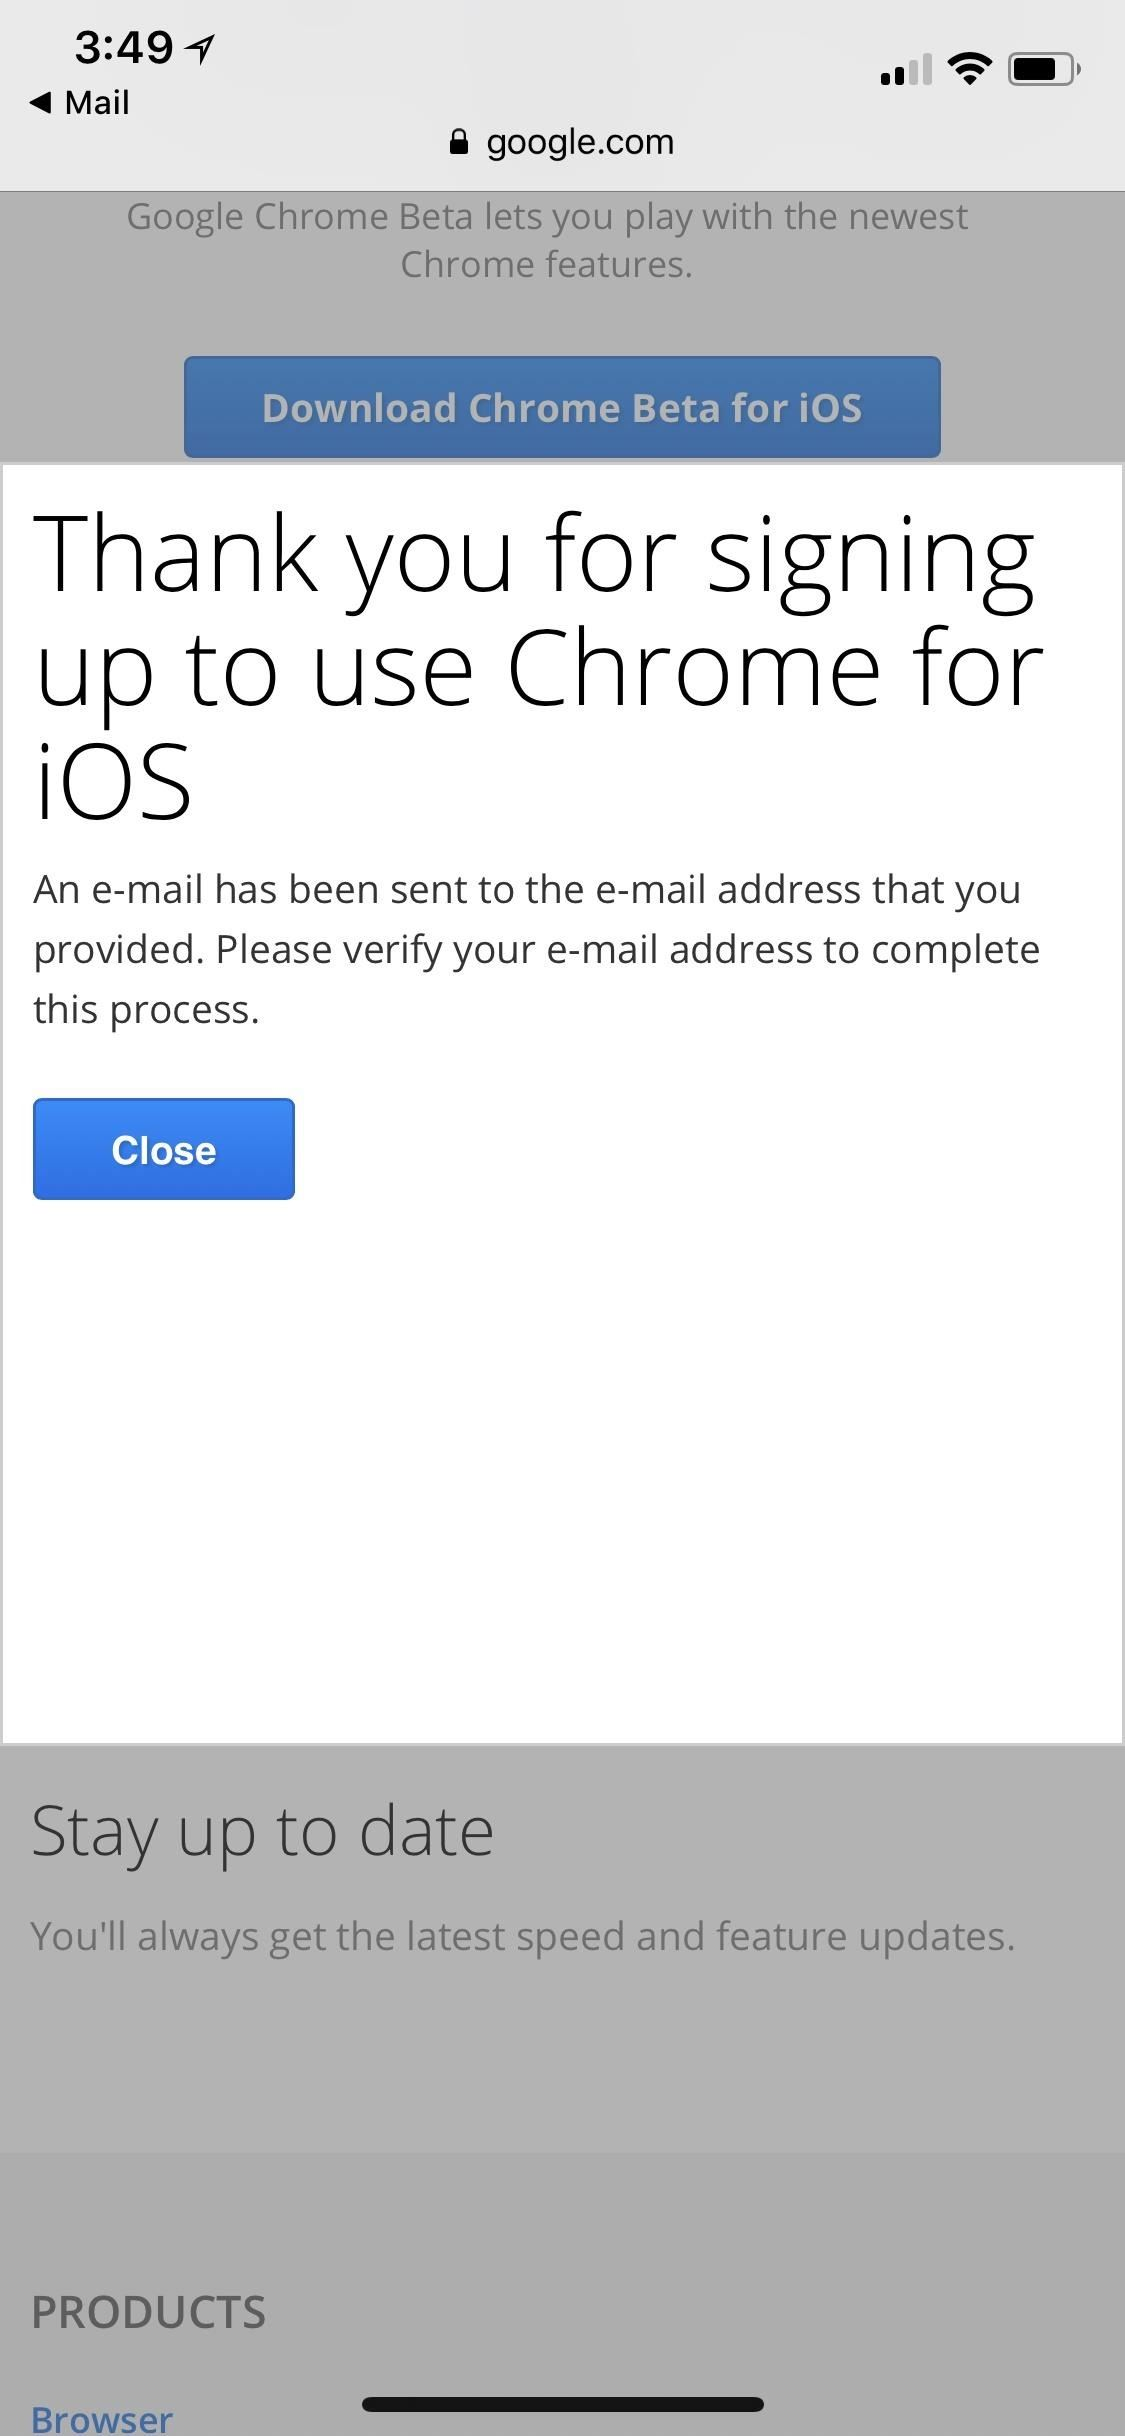 Google Chrome 101: How to Install the Beta Browser on iPhone & Android